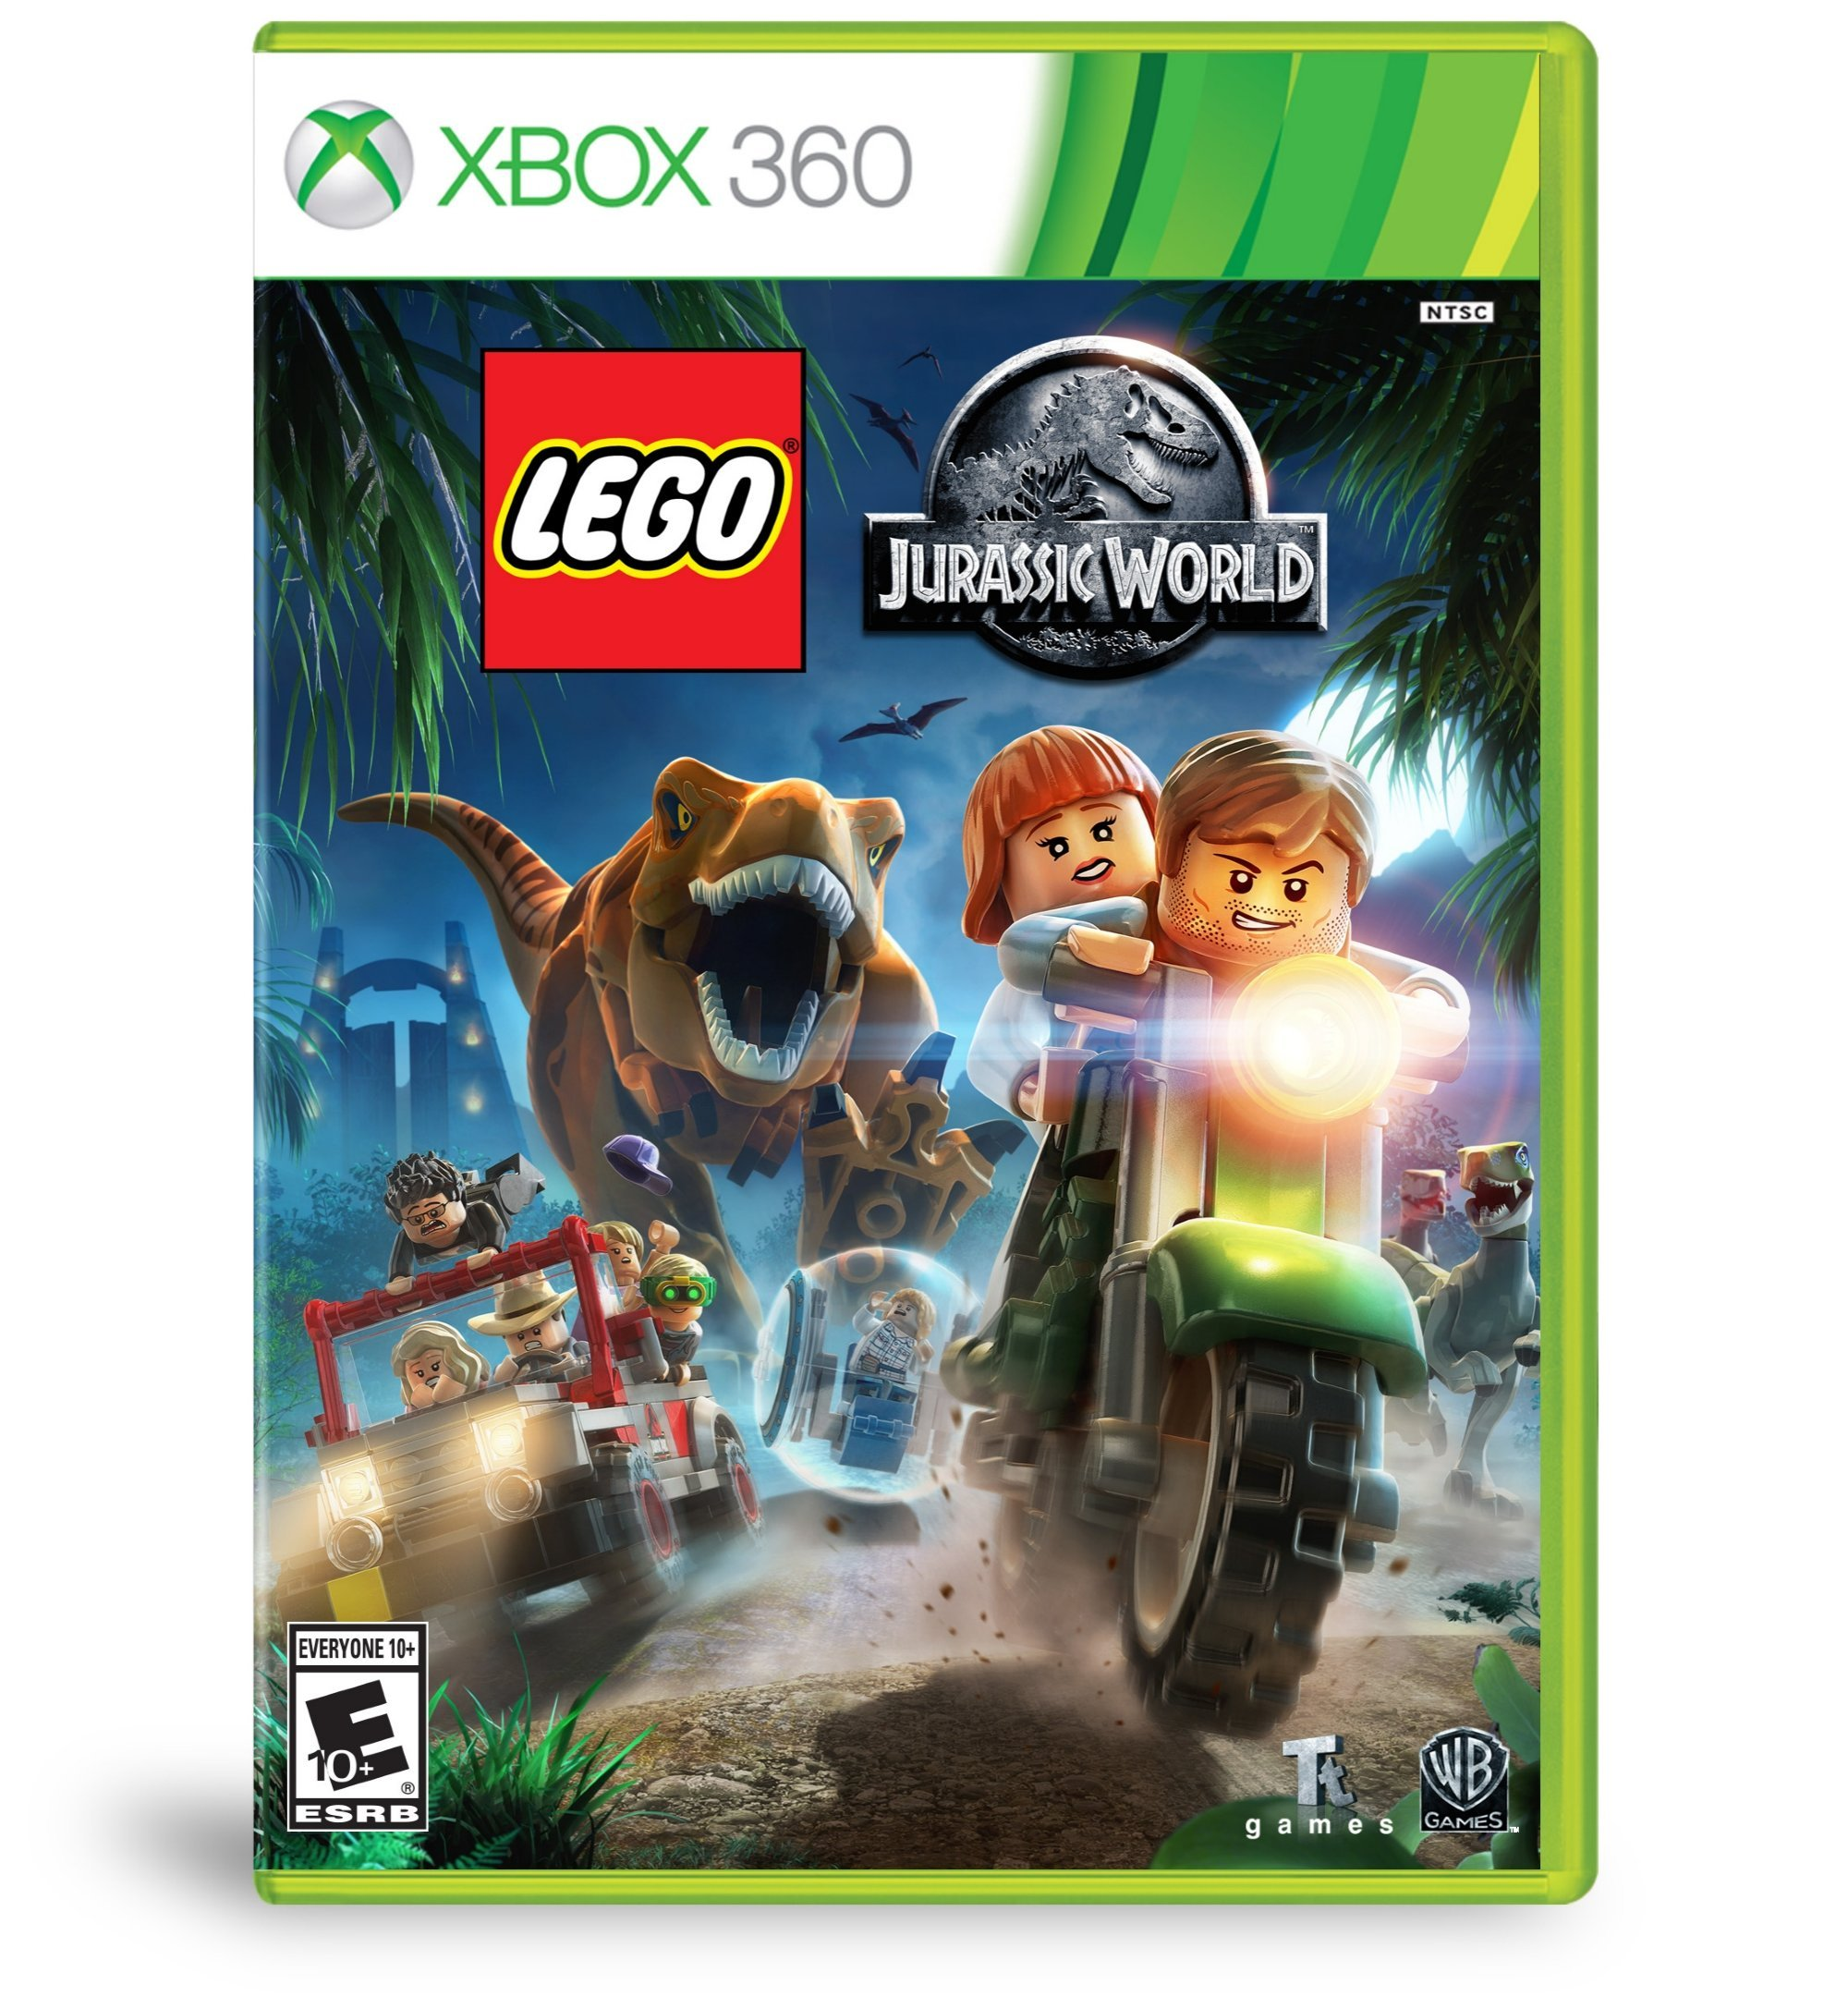 Wb Lego Jurassic World - Action/adventure Game - Xbox 360 (1000565139)